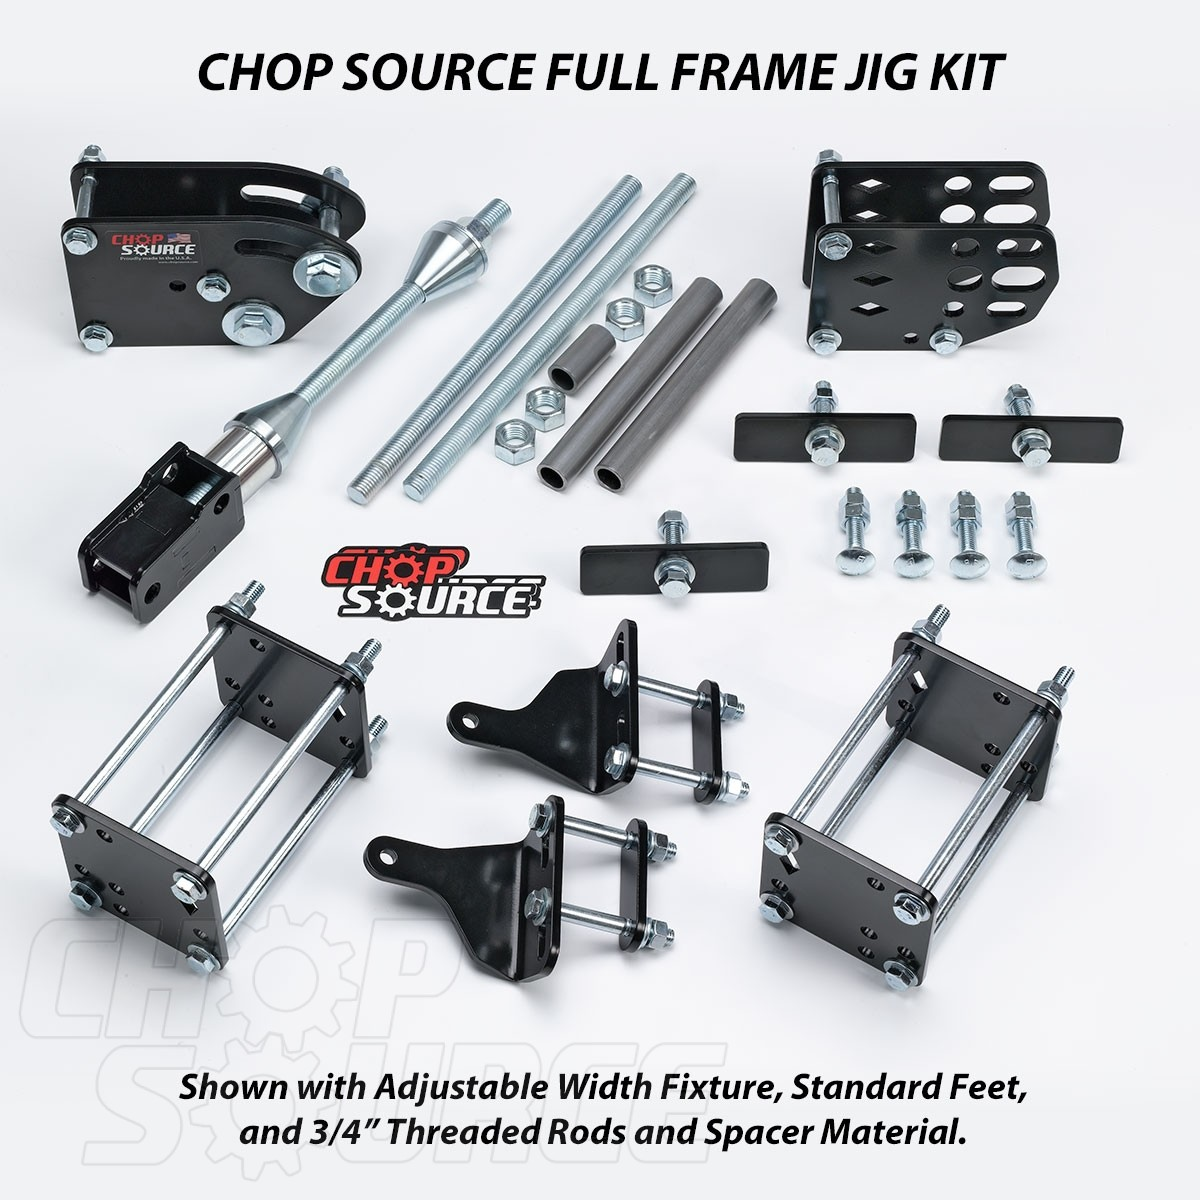 Chop Source Motorcycle Frame Jig Kit - Adjustable Width Fixture and Standard Feet